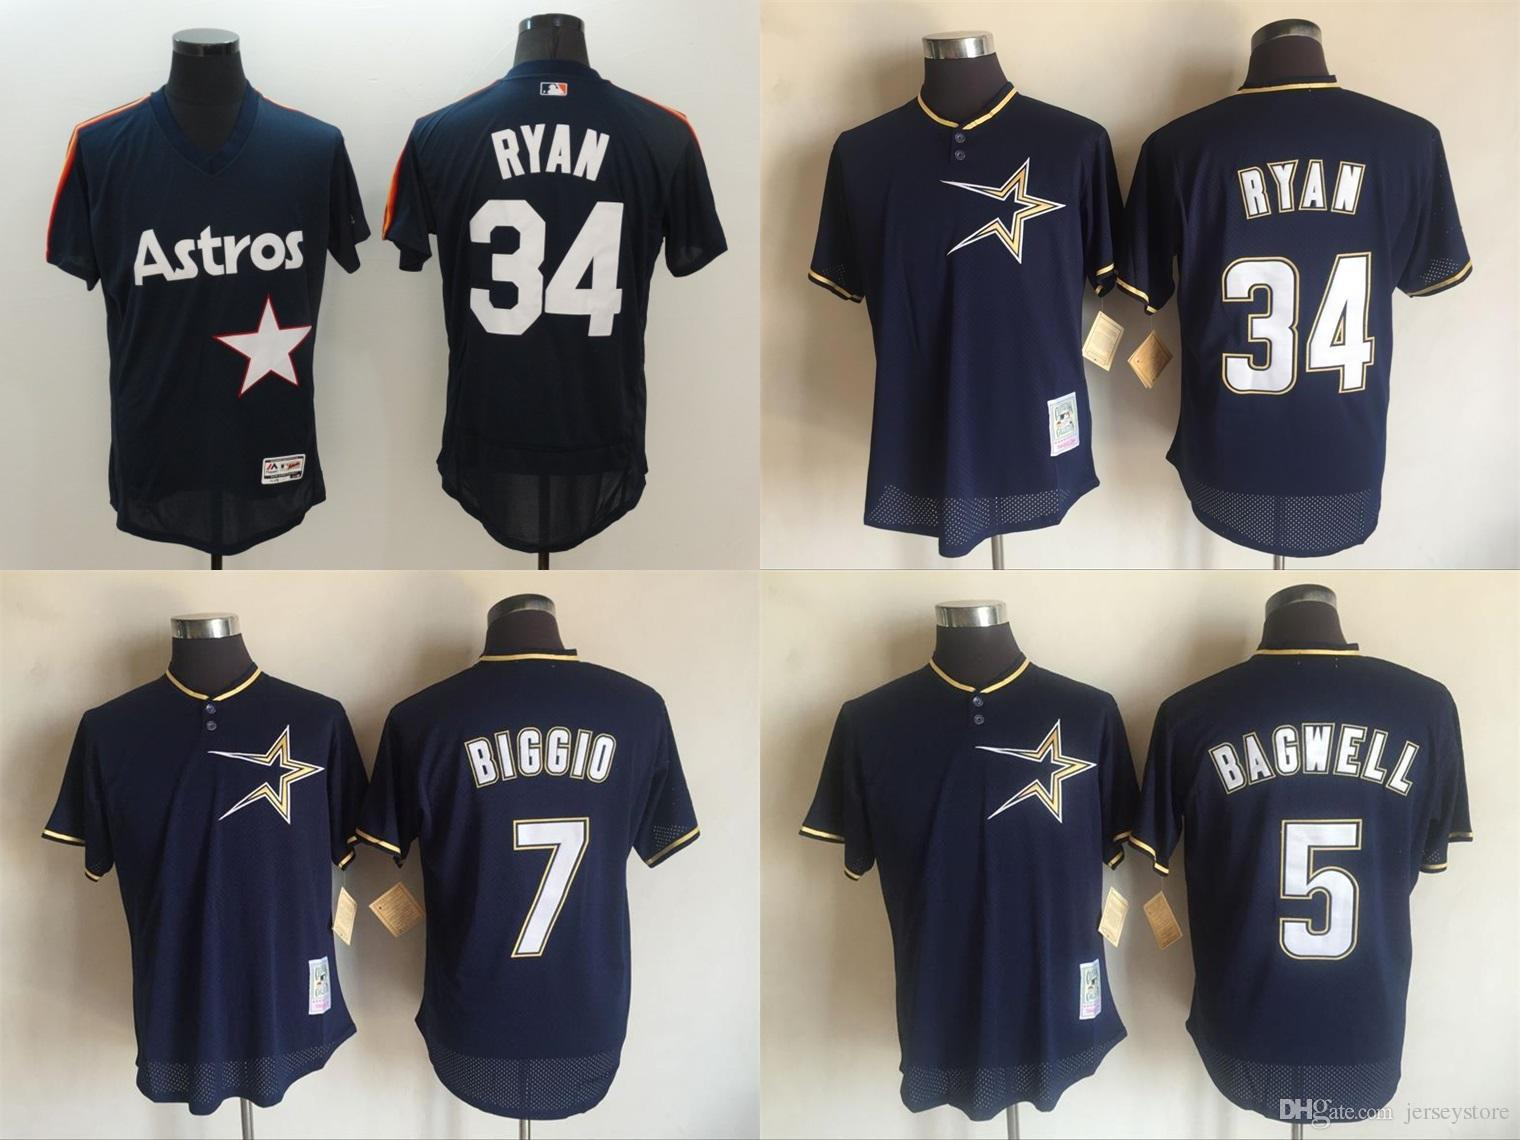 69daa500c ... buy stitched houston astros jersey men 5 jeff bagwell sweden 2017  houston astros 34 nolan ryan